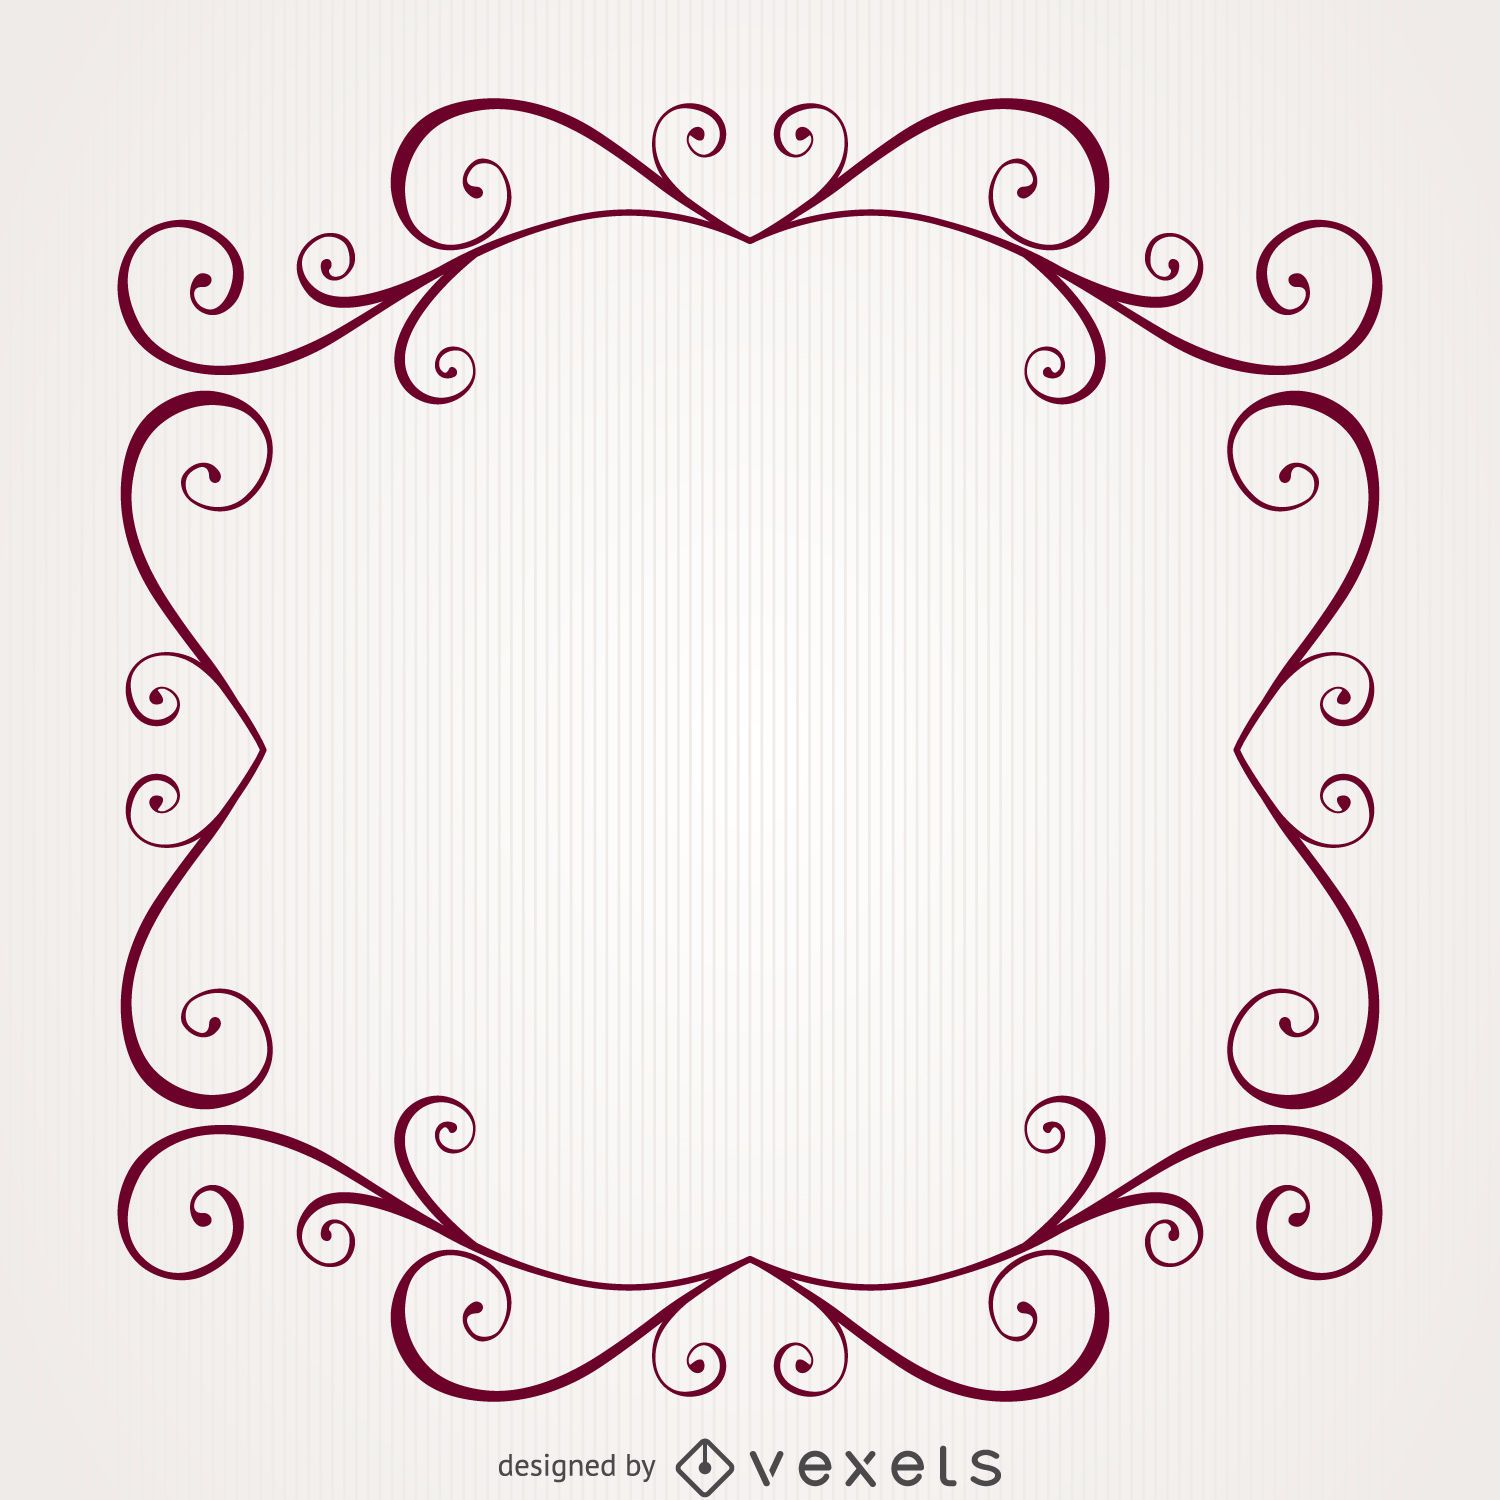 Retro vintage swirl frame - Vector download